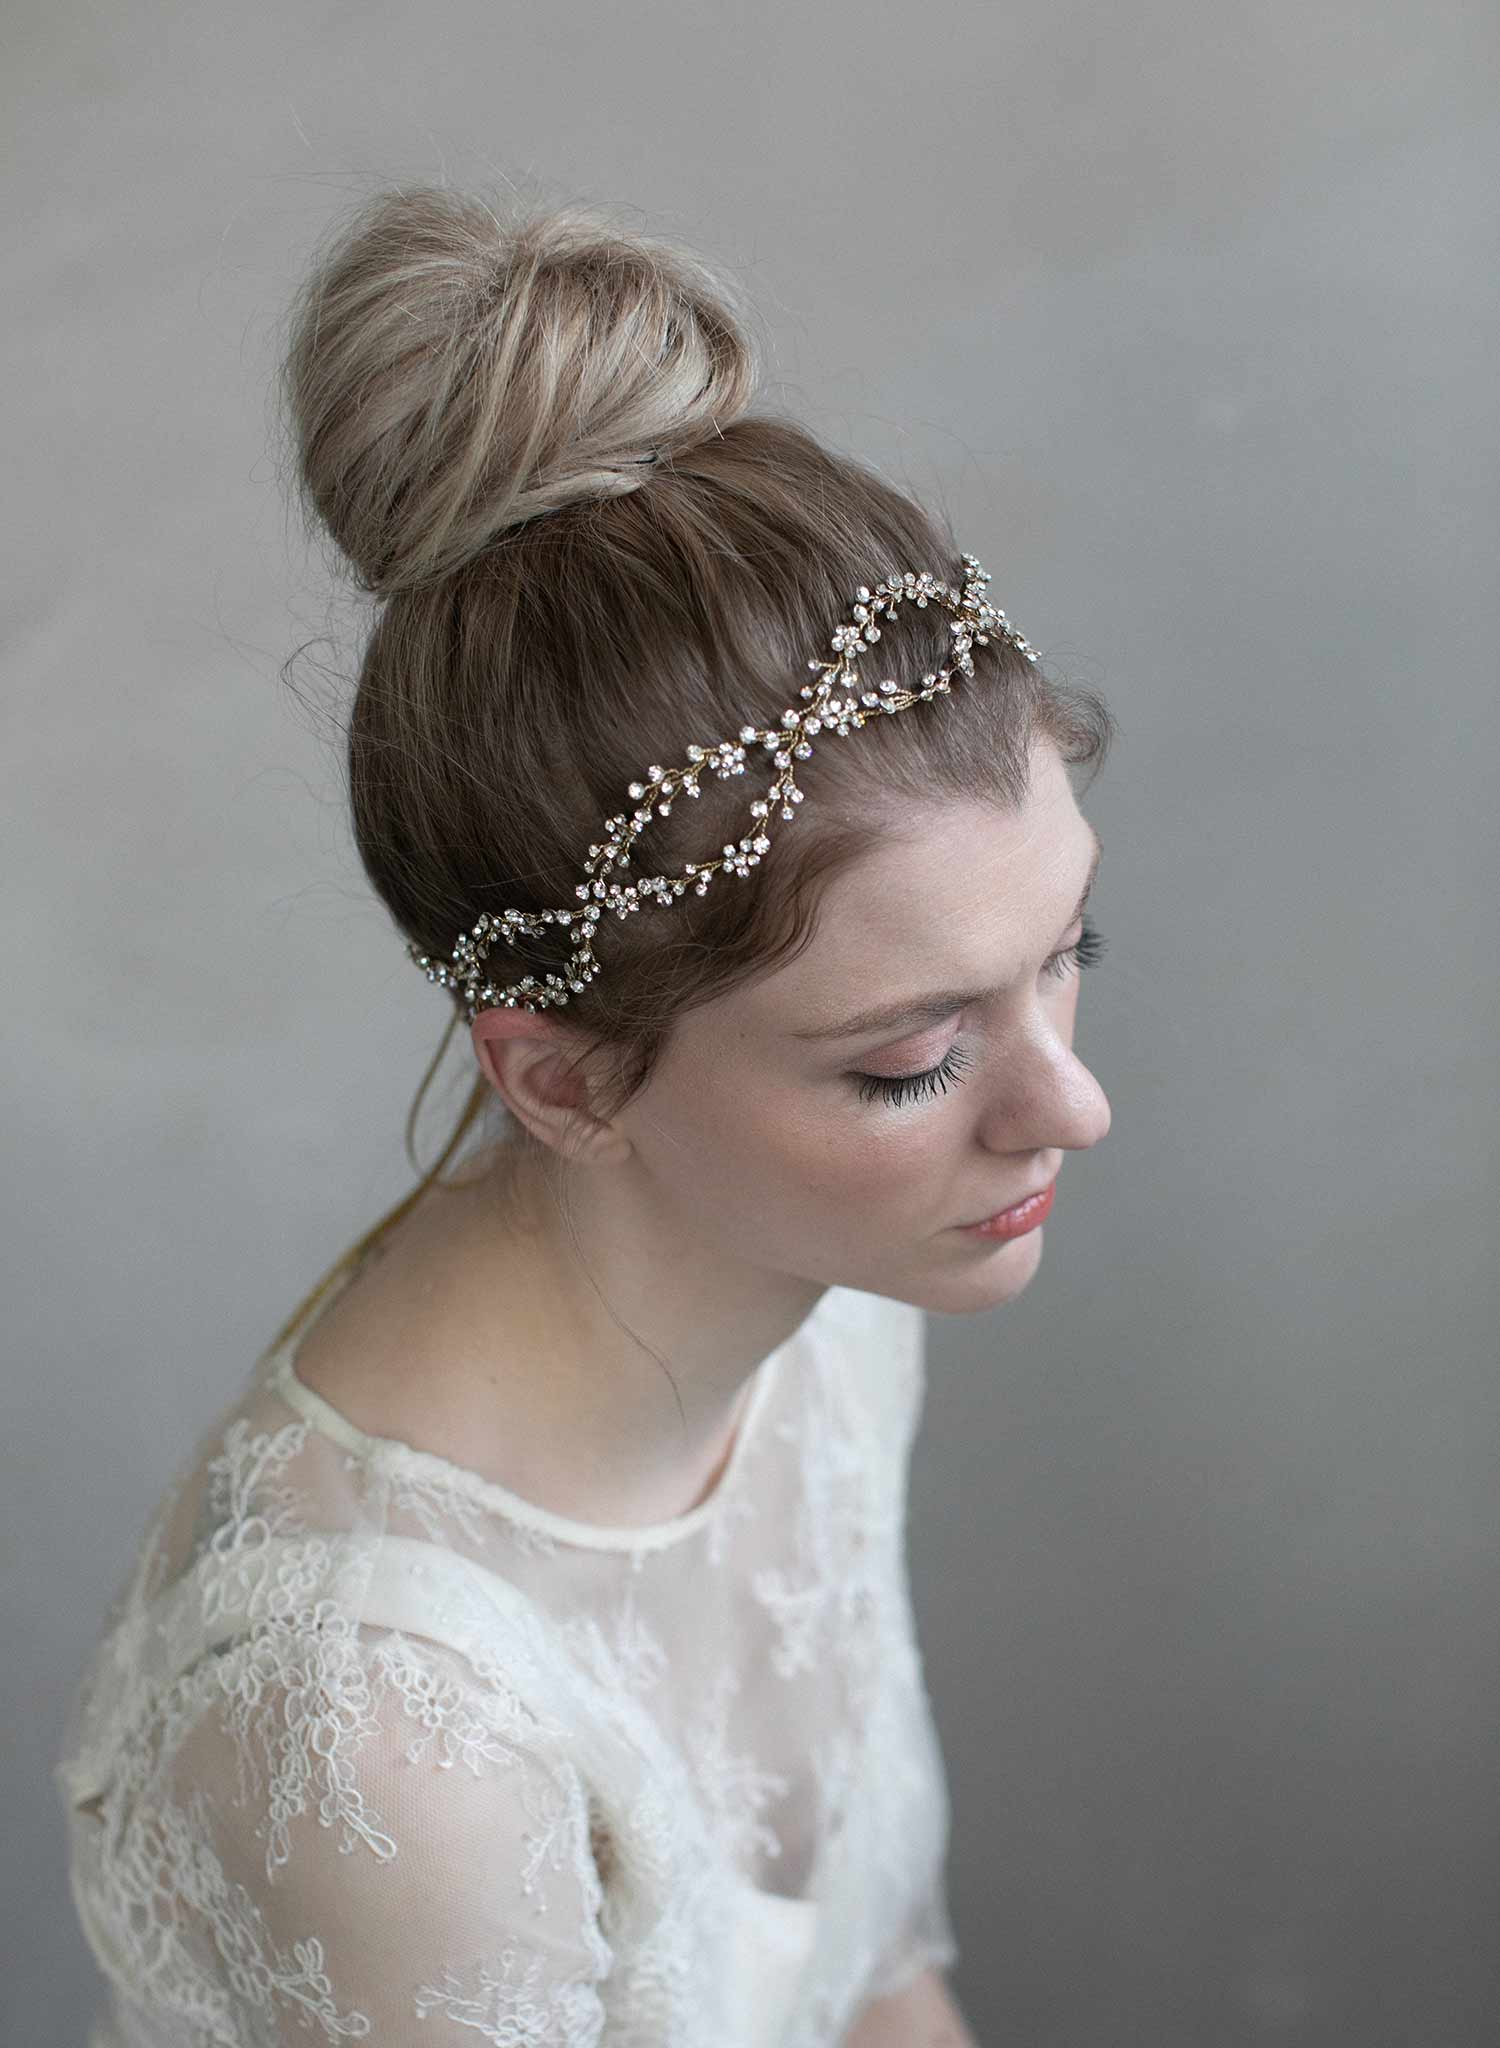 infinity hair style hair vines bridal hair vines vines twigs 5360 | 905 crystal infinity hair vine bridal weddingheadband twigsandhoney 0008 1